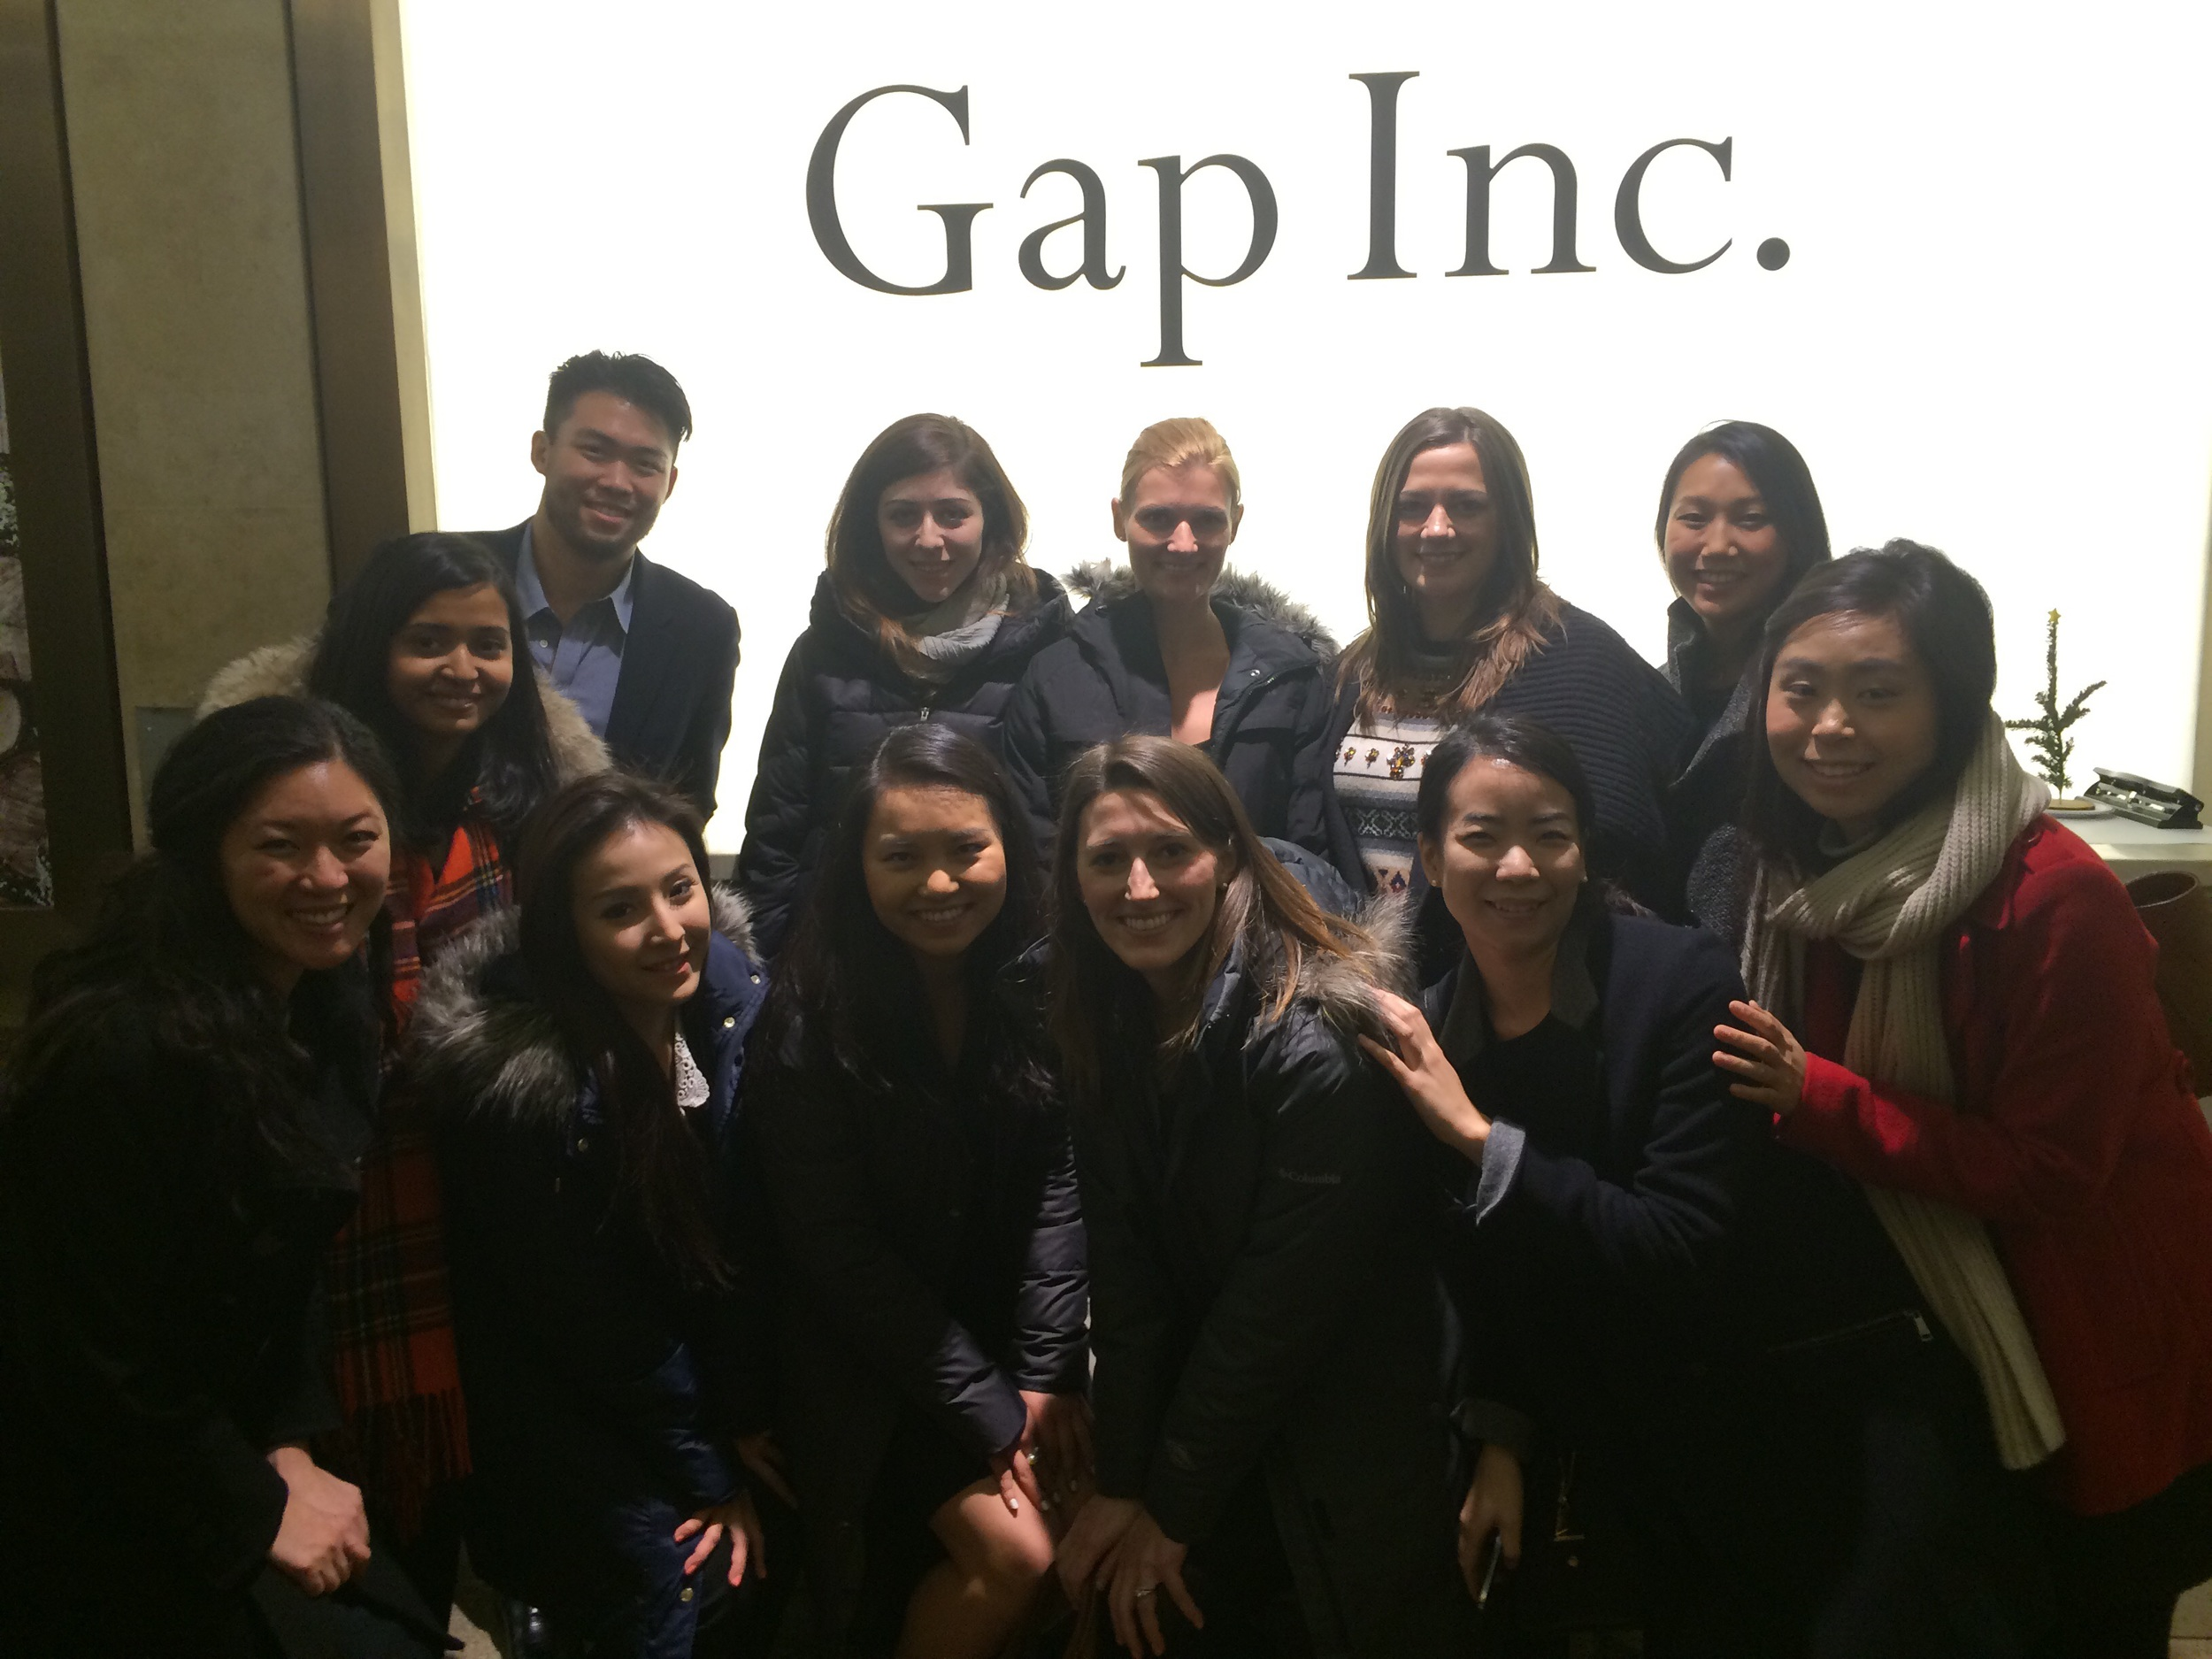 @ Gap (from L to R) Back Row - Patrick Yan, Emma Rotenberg, Julie Hasiba, Sarah Jahnke, Sally Yoon. Front Row -  Andi Hadisutjipto, Faria Jabbar, Irene Tsai, Mary Yang, Insley Haynes, Mina Kim, Sana Suh.